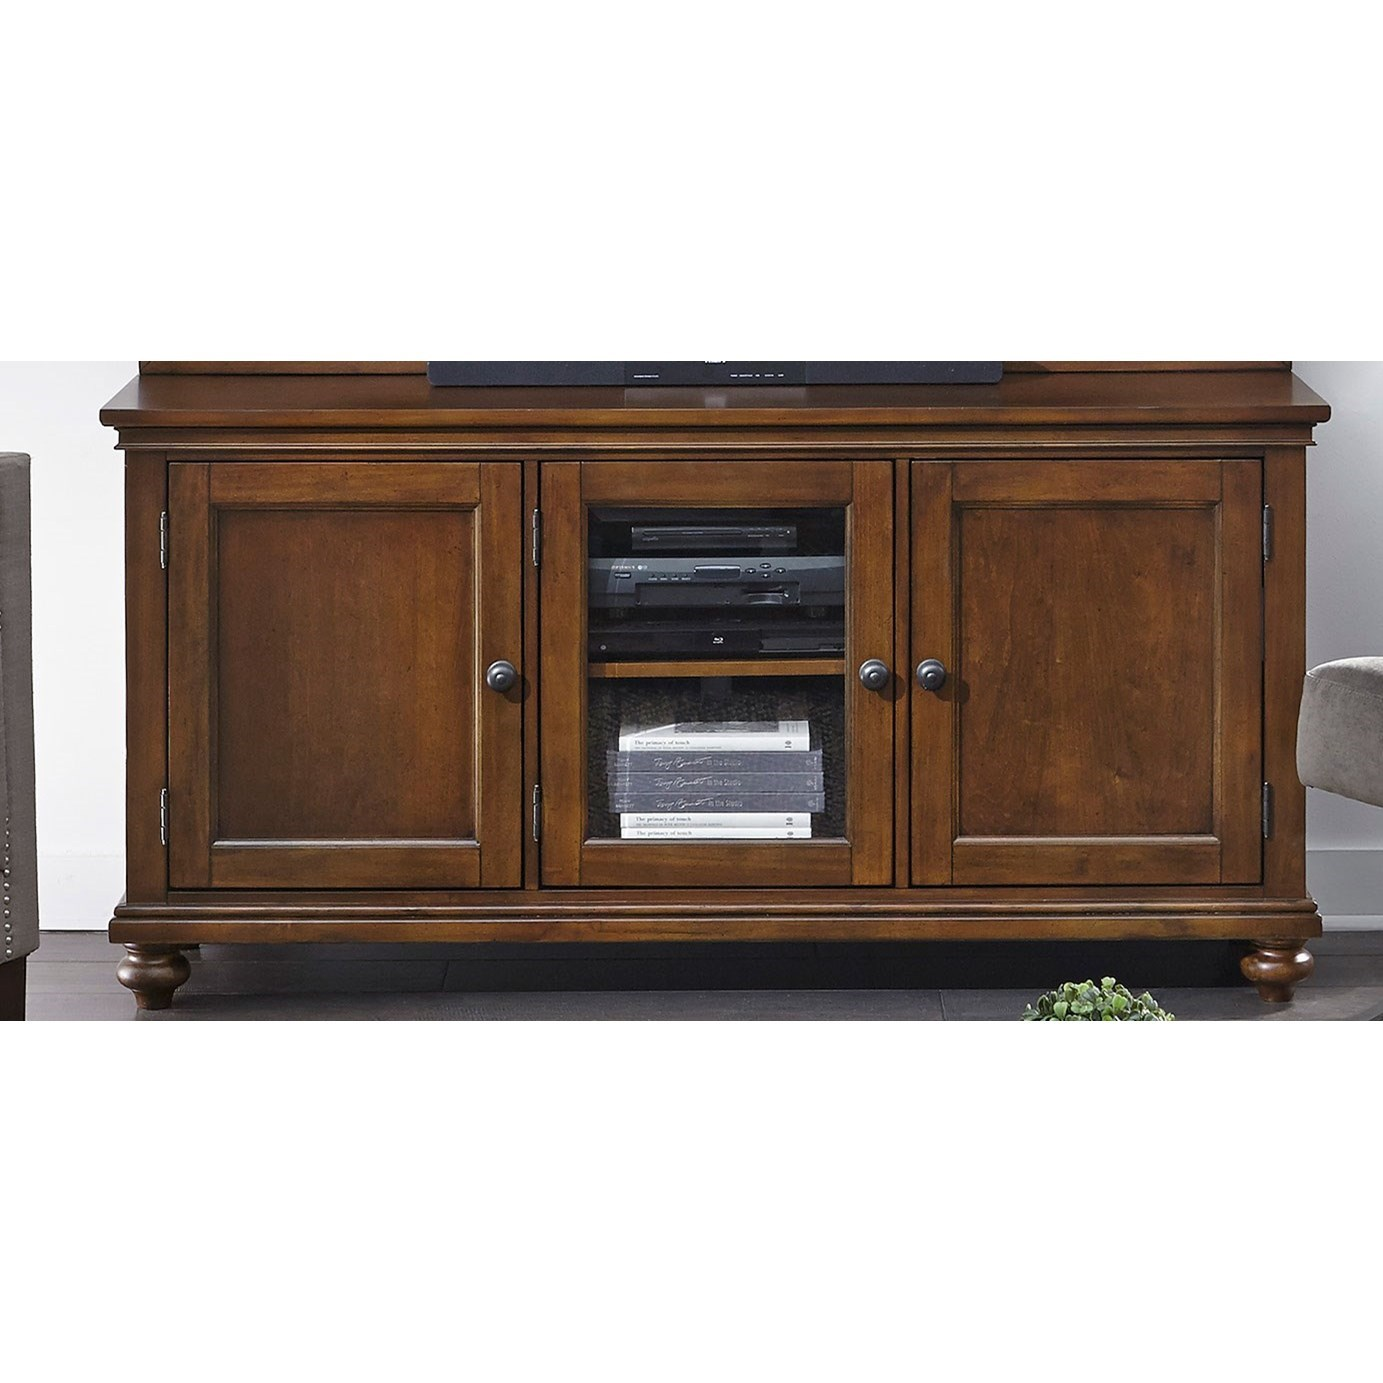 "Oxford 65"" TV Stand by Aspenhome at Walker's Furniture"